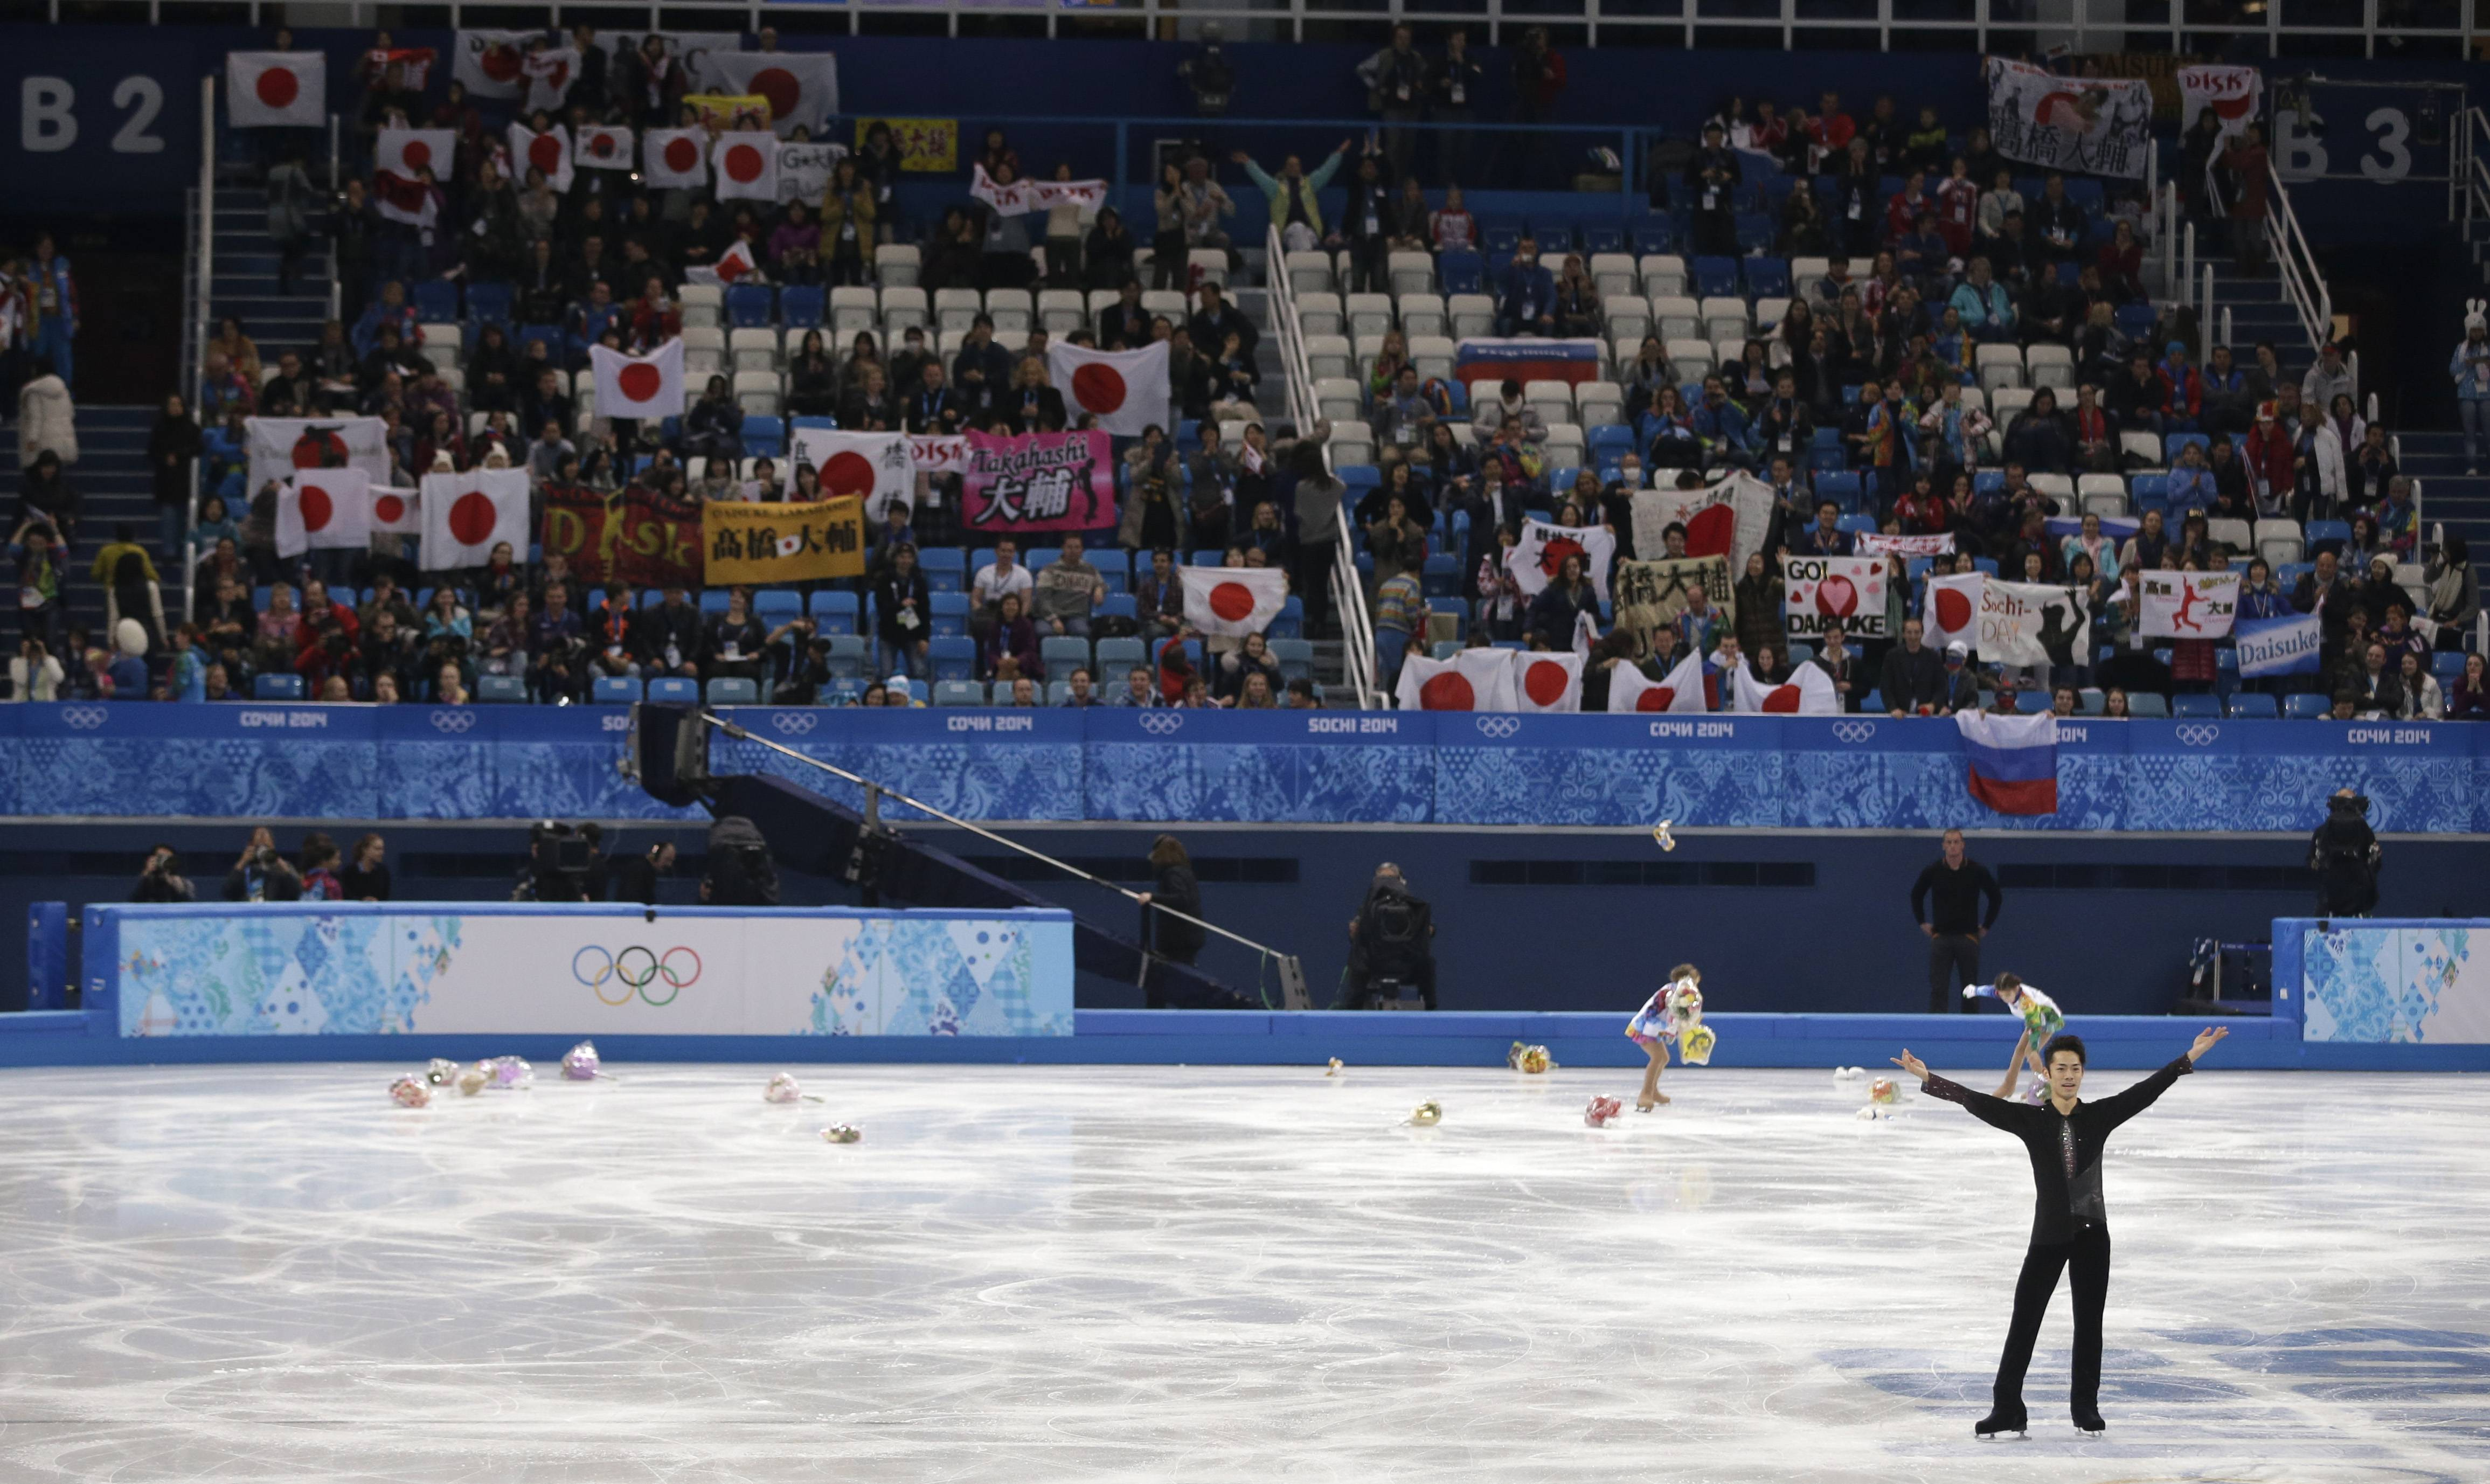 Daisuke Takahashi of Japan acknowledges the crowd after competing in the men's short program figure skating competition.